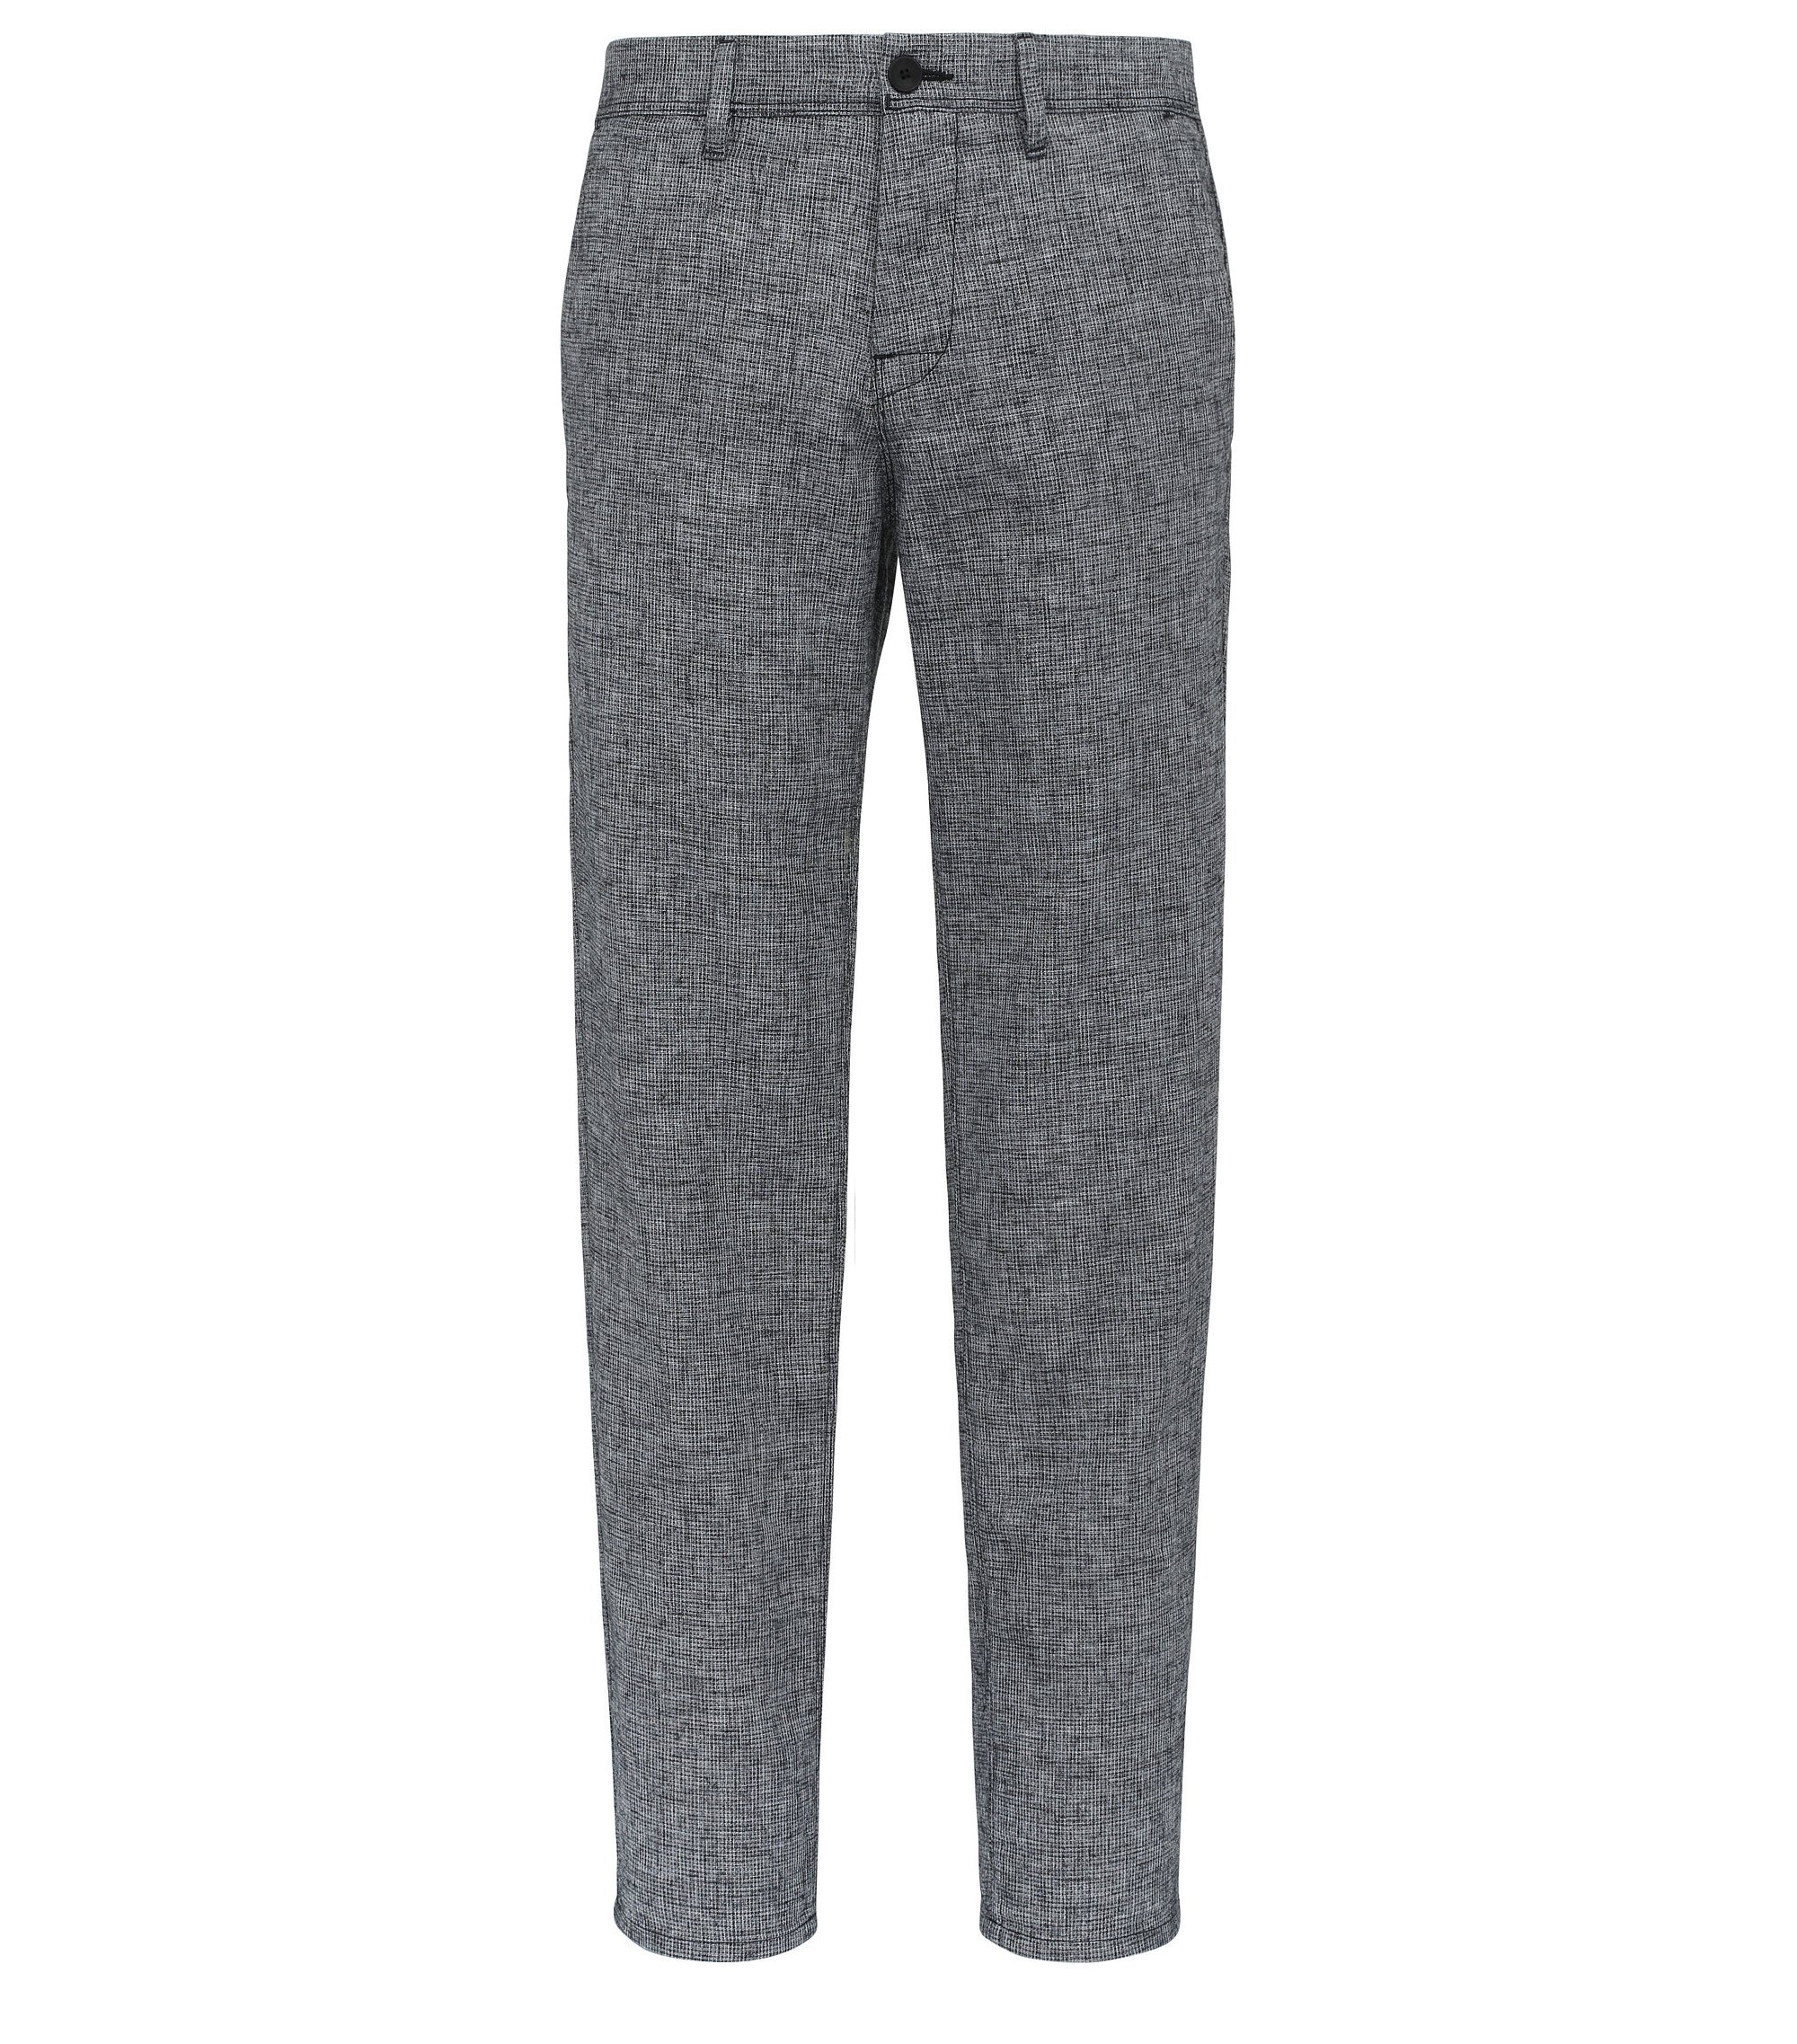 Cotton Linen Blend Trousers, Tapered Fit | Stapered W, Dark Blue